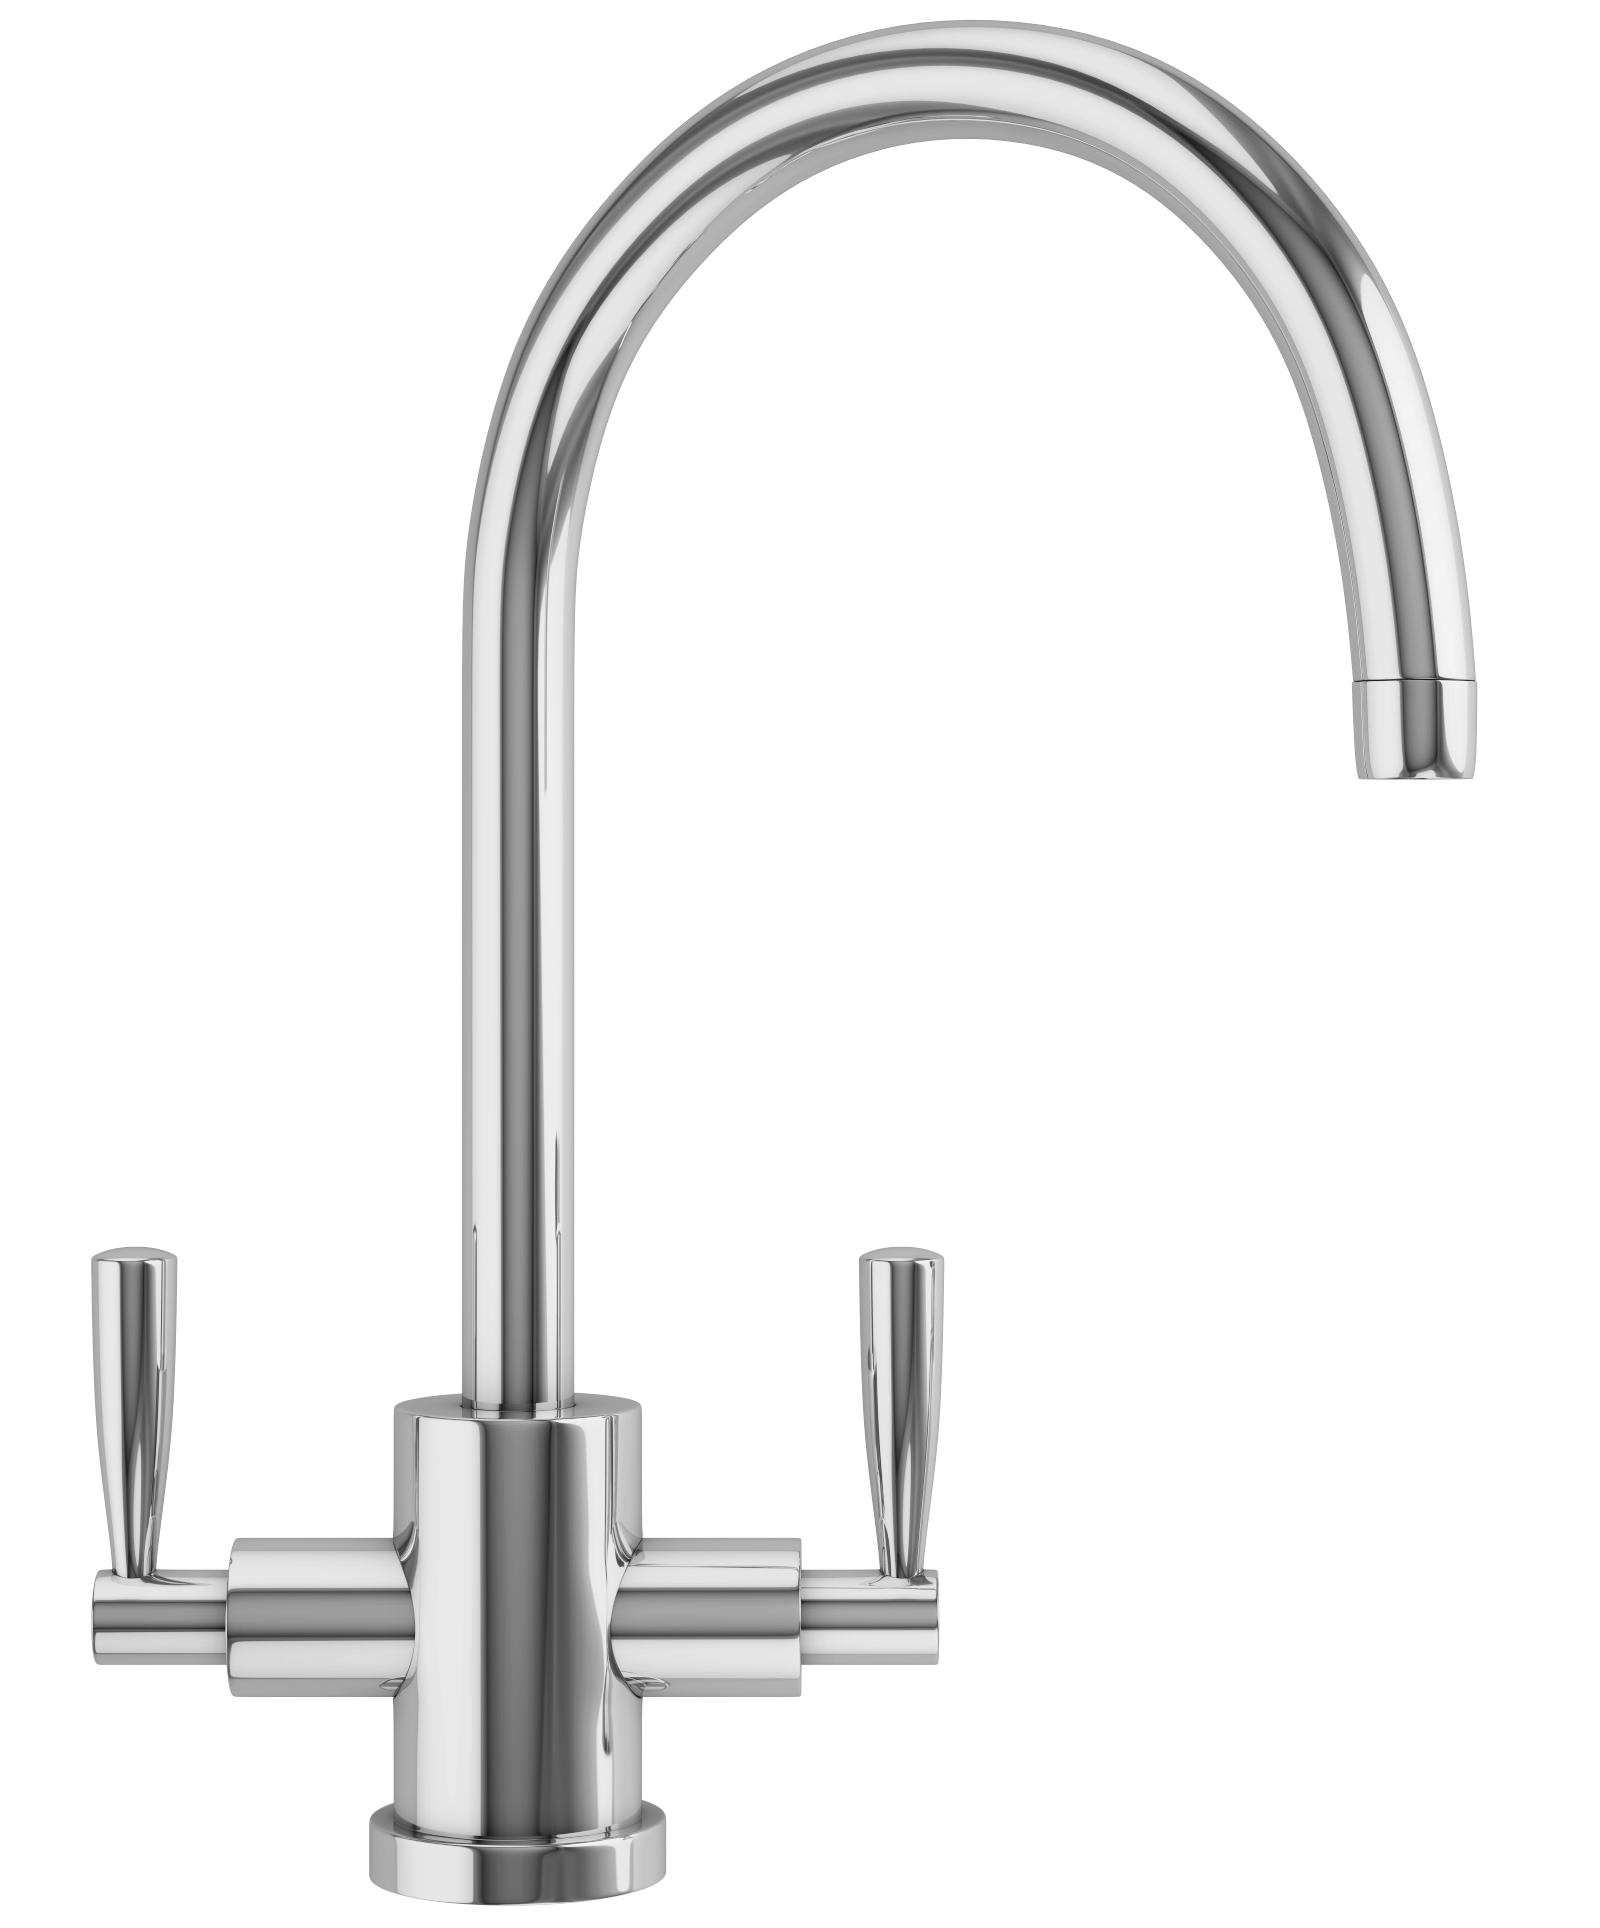 Sink Mixer Taps Franke Olympus Kitchen Sink Mixer Tap Chrome More Finish